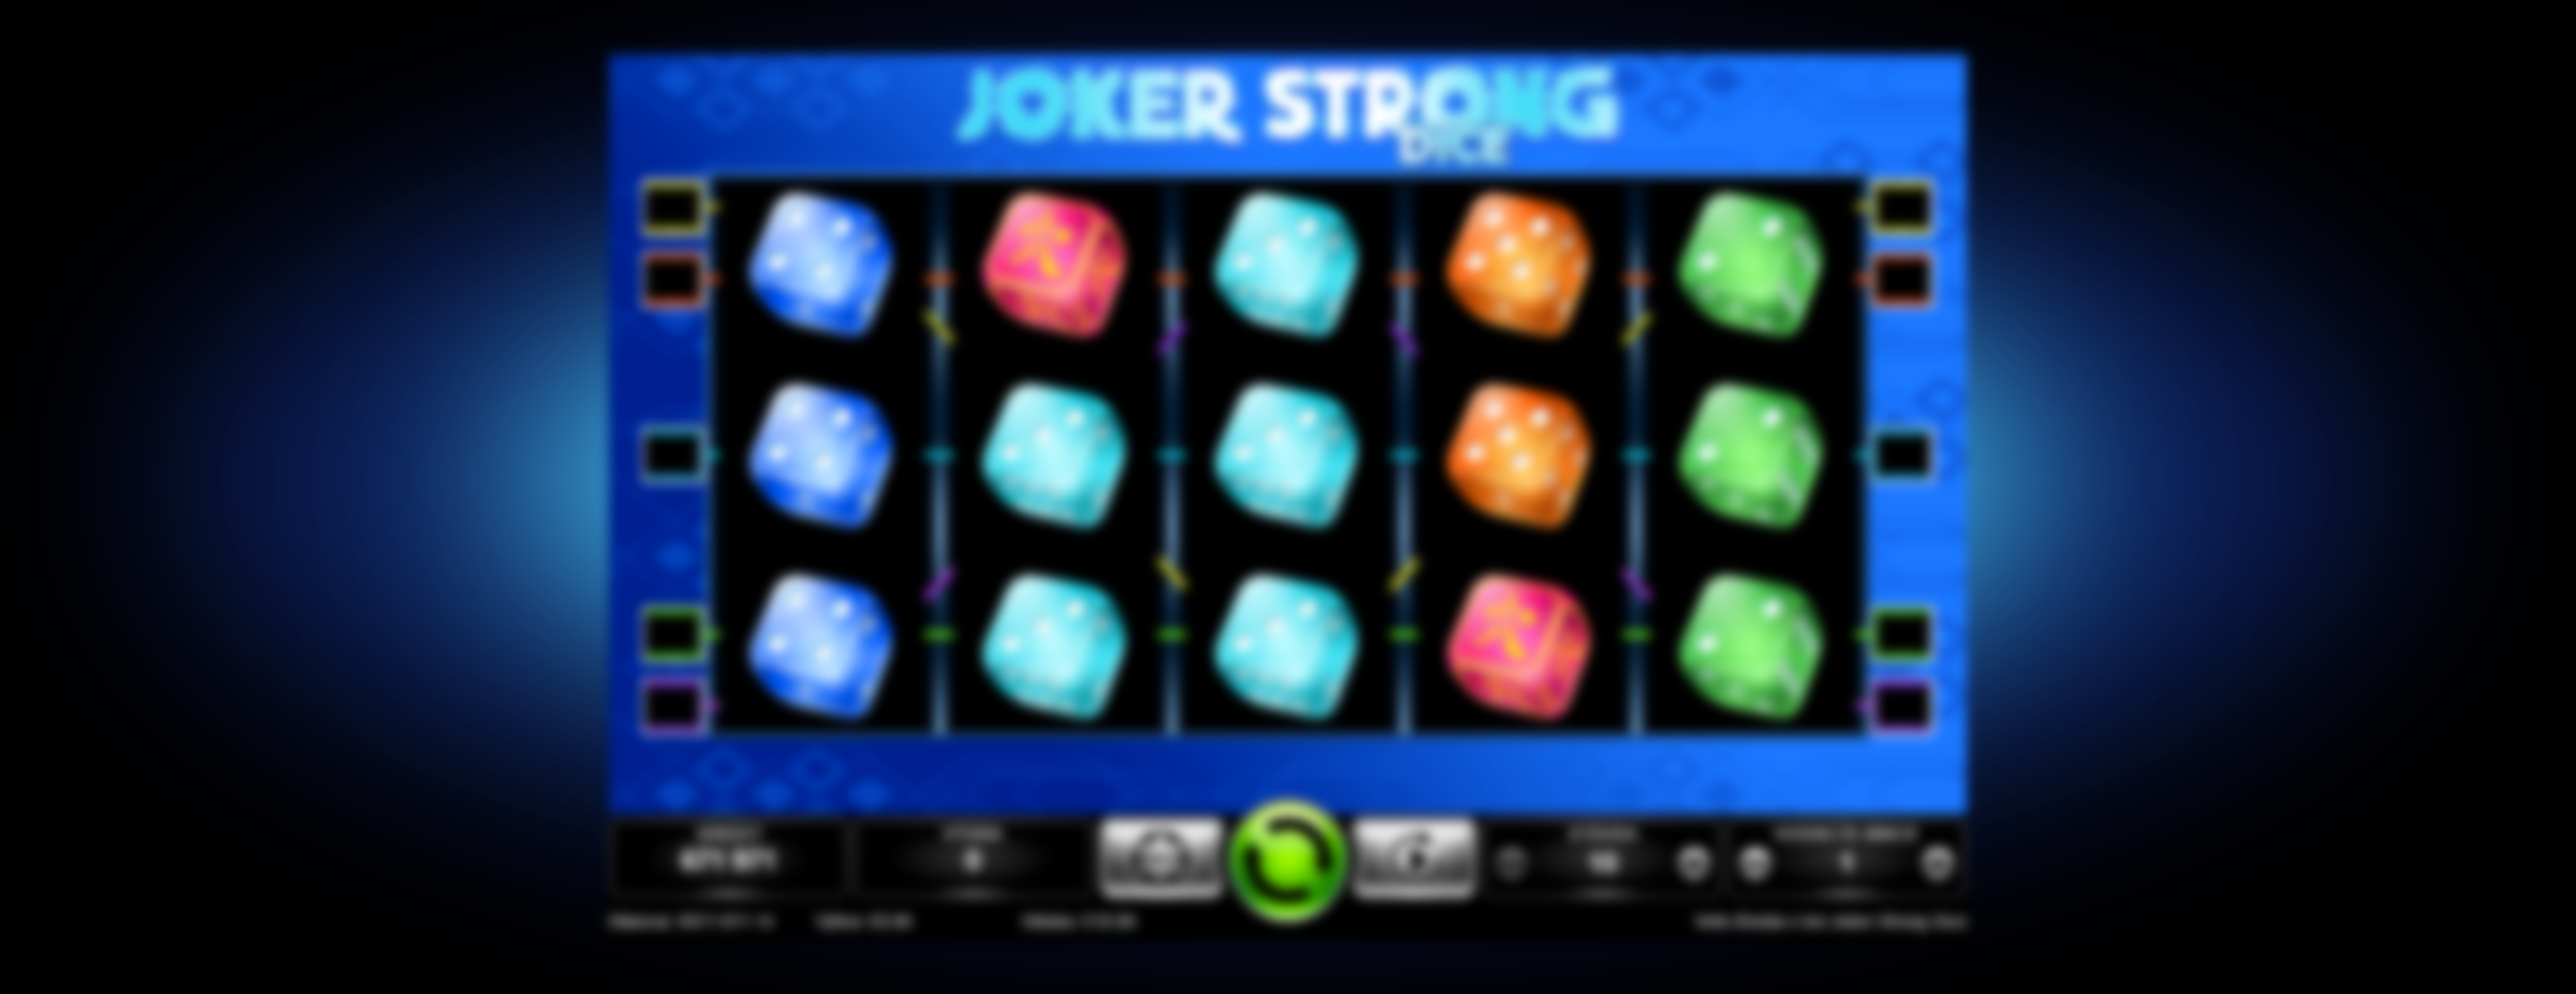 Joker Strong Dice main photo